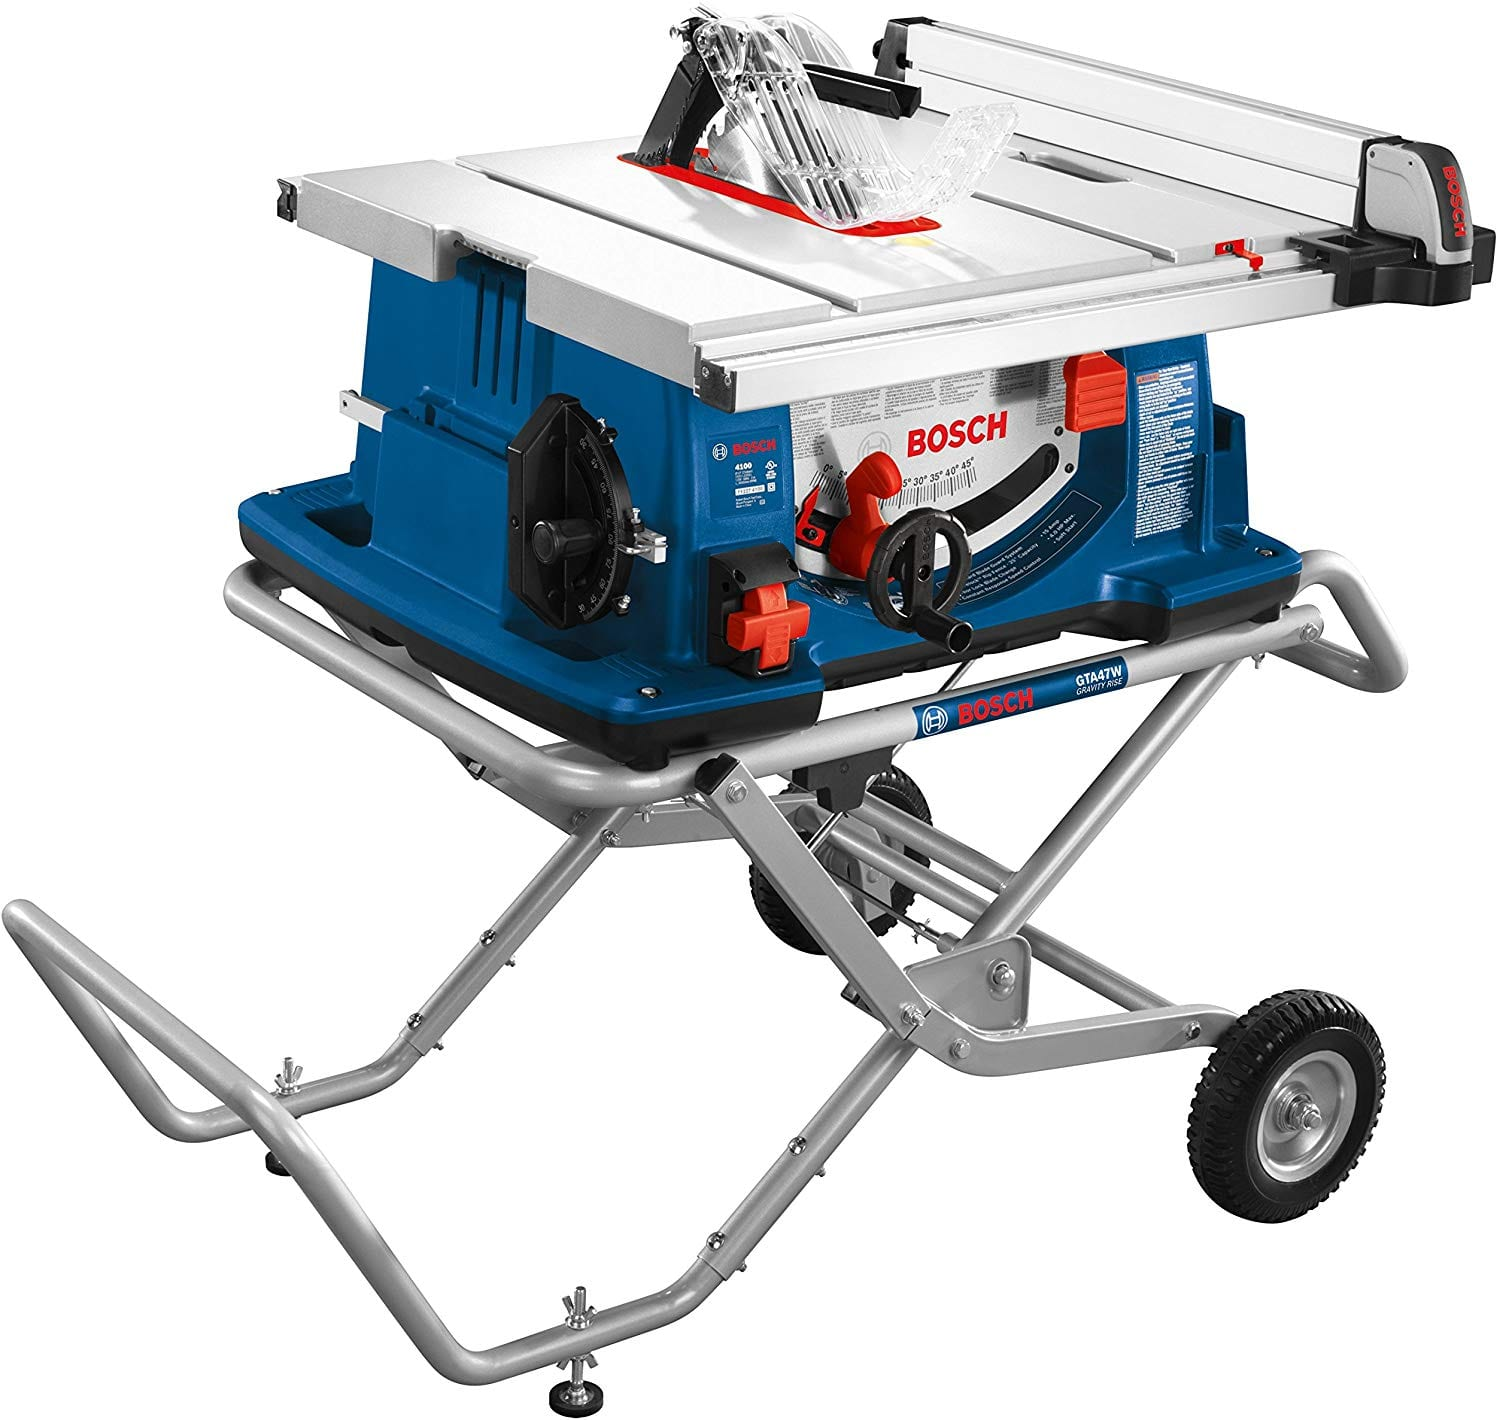 Bosch Tool Power 4100-10 Jobsite Folding Table Stand Saw